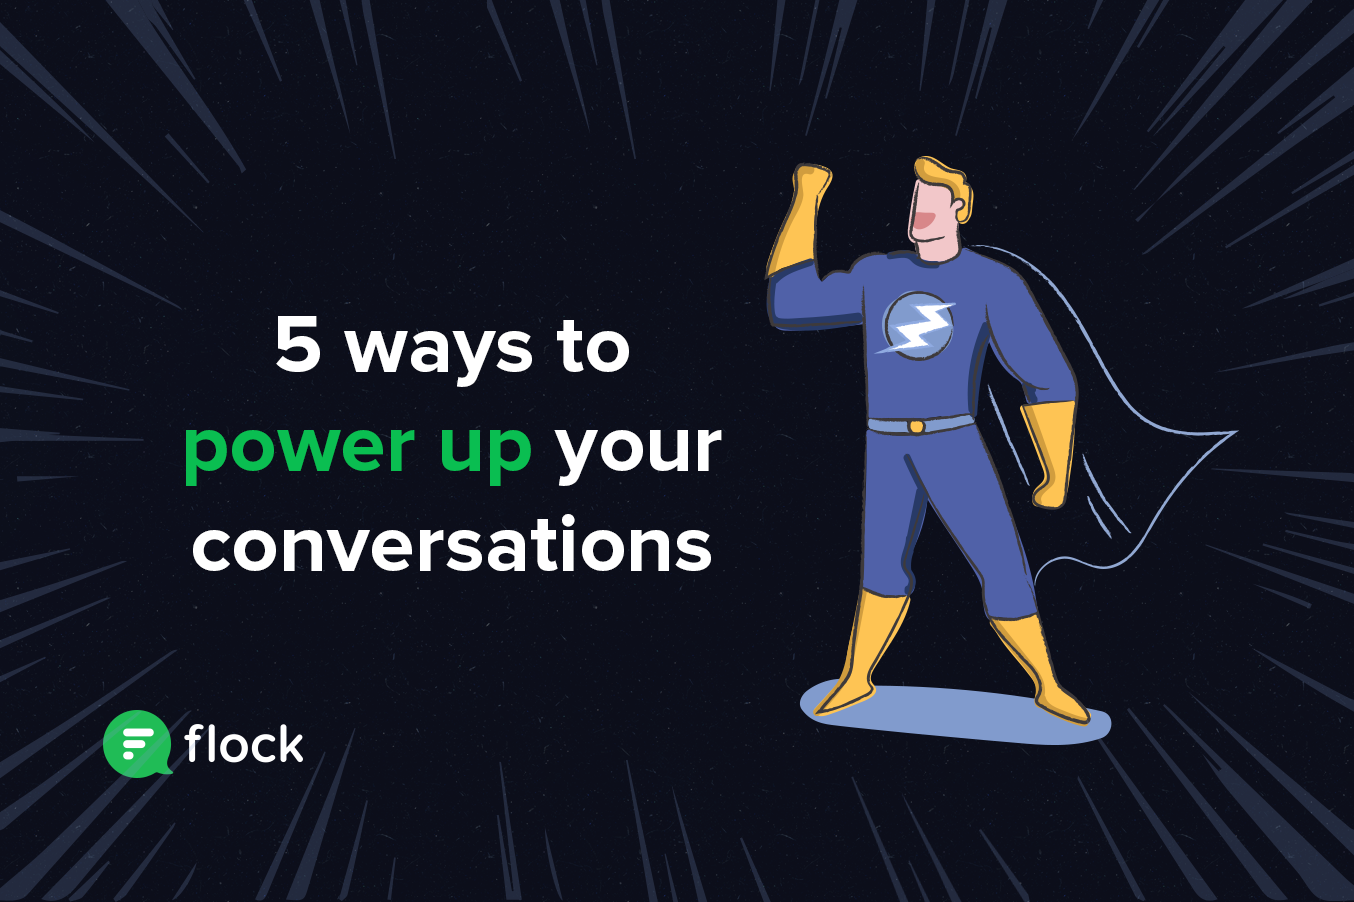 Graphic: 5 ways to power up your conversations